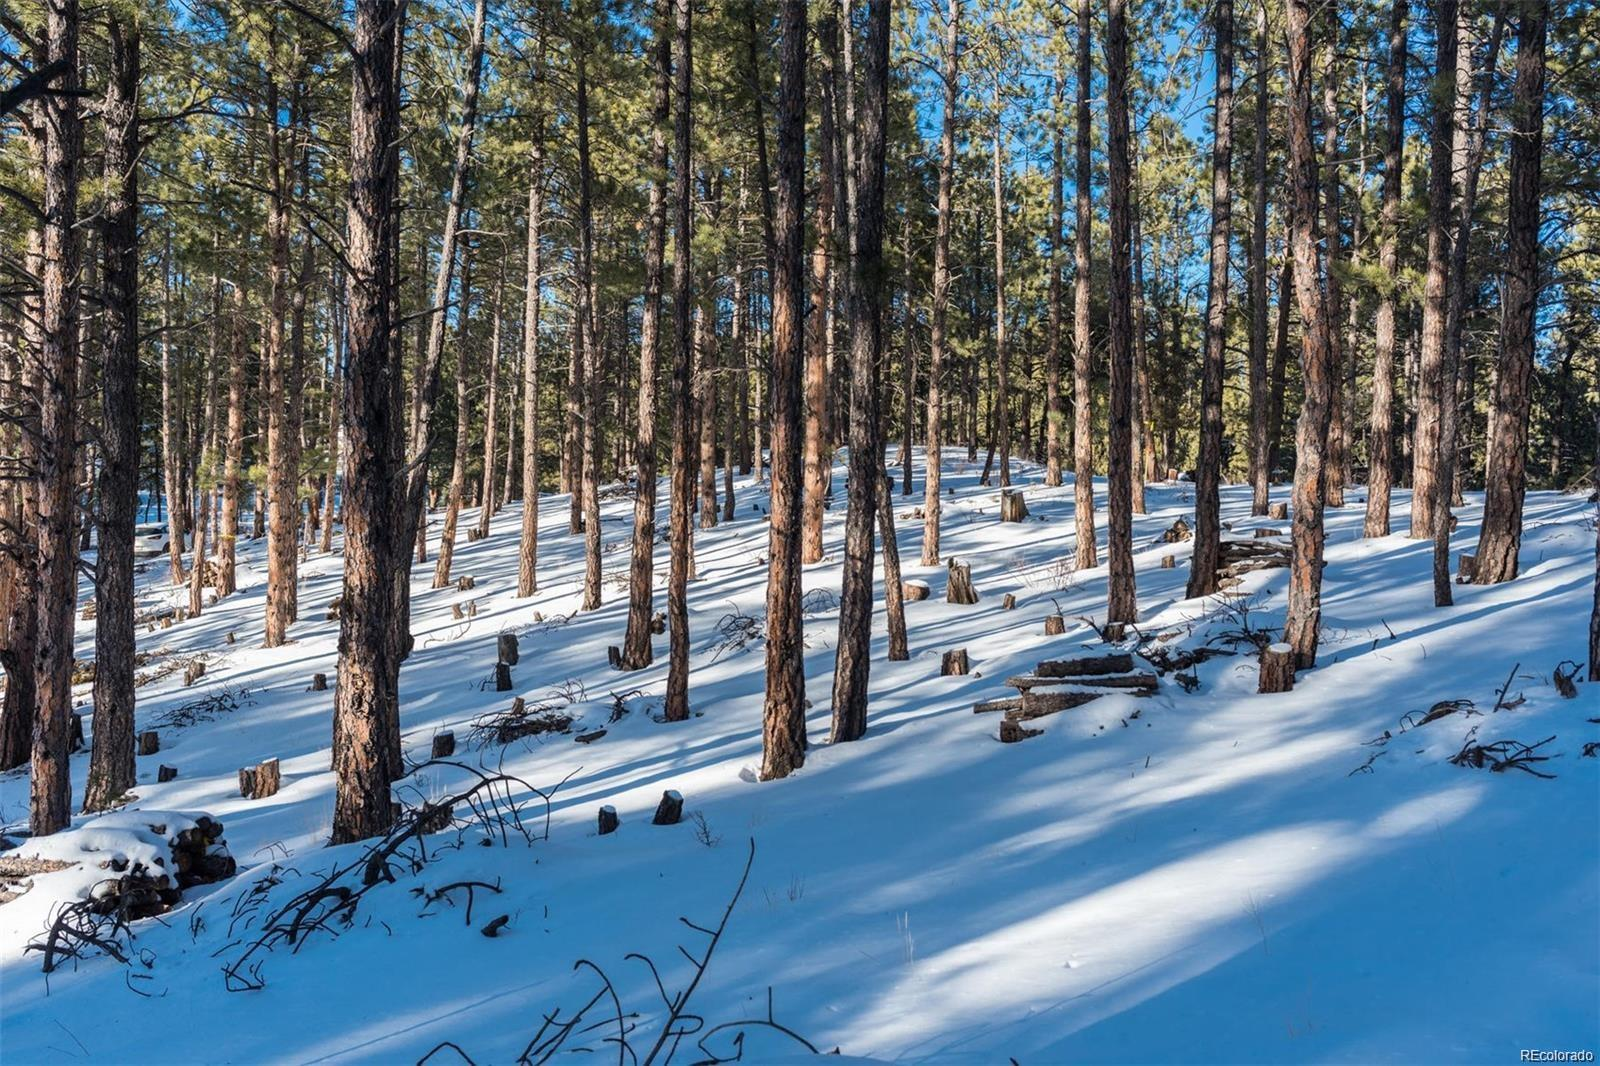 TBD Lot 4 Elk Valley Road, Evergreen, CO 80439 - Evergreen, CO real estate listing